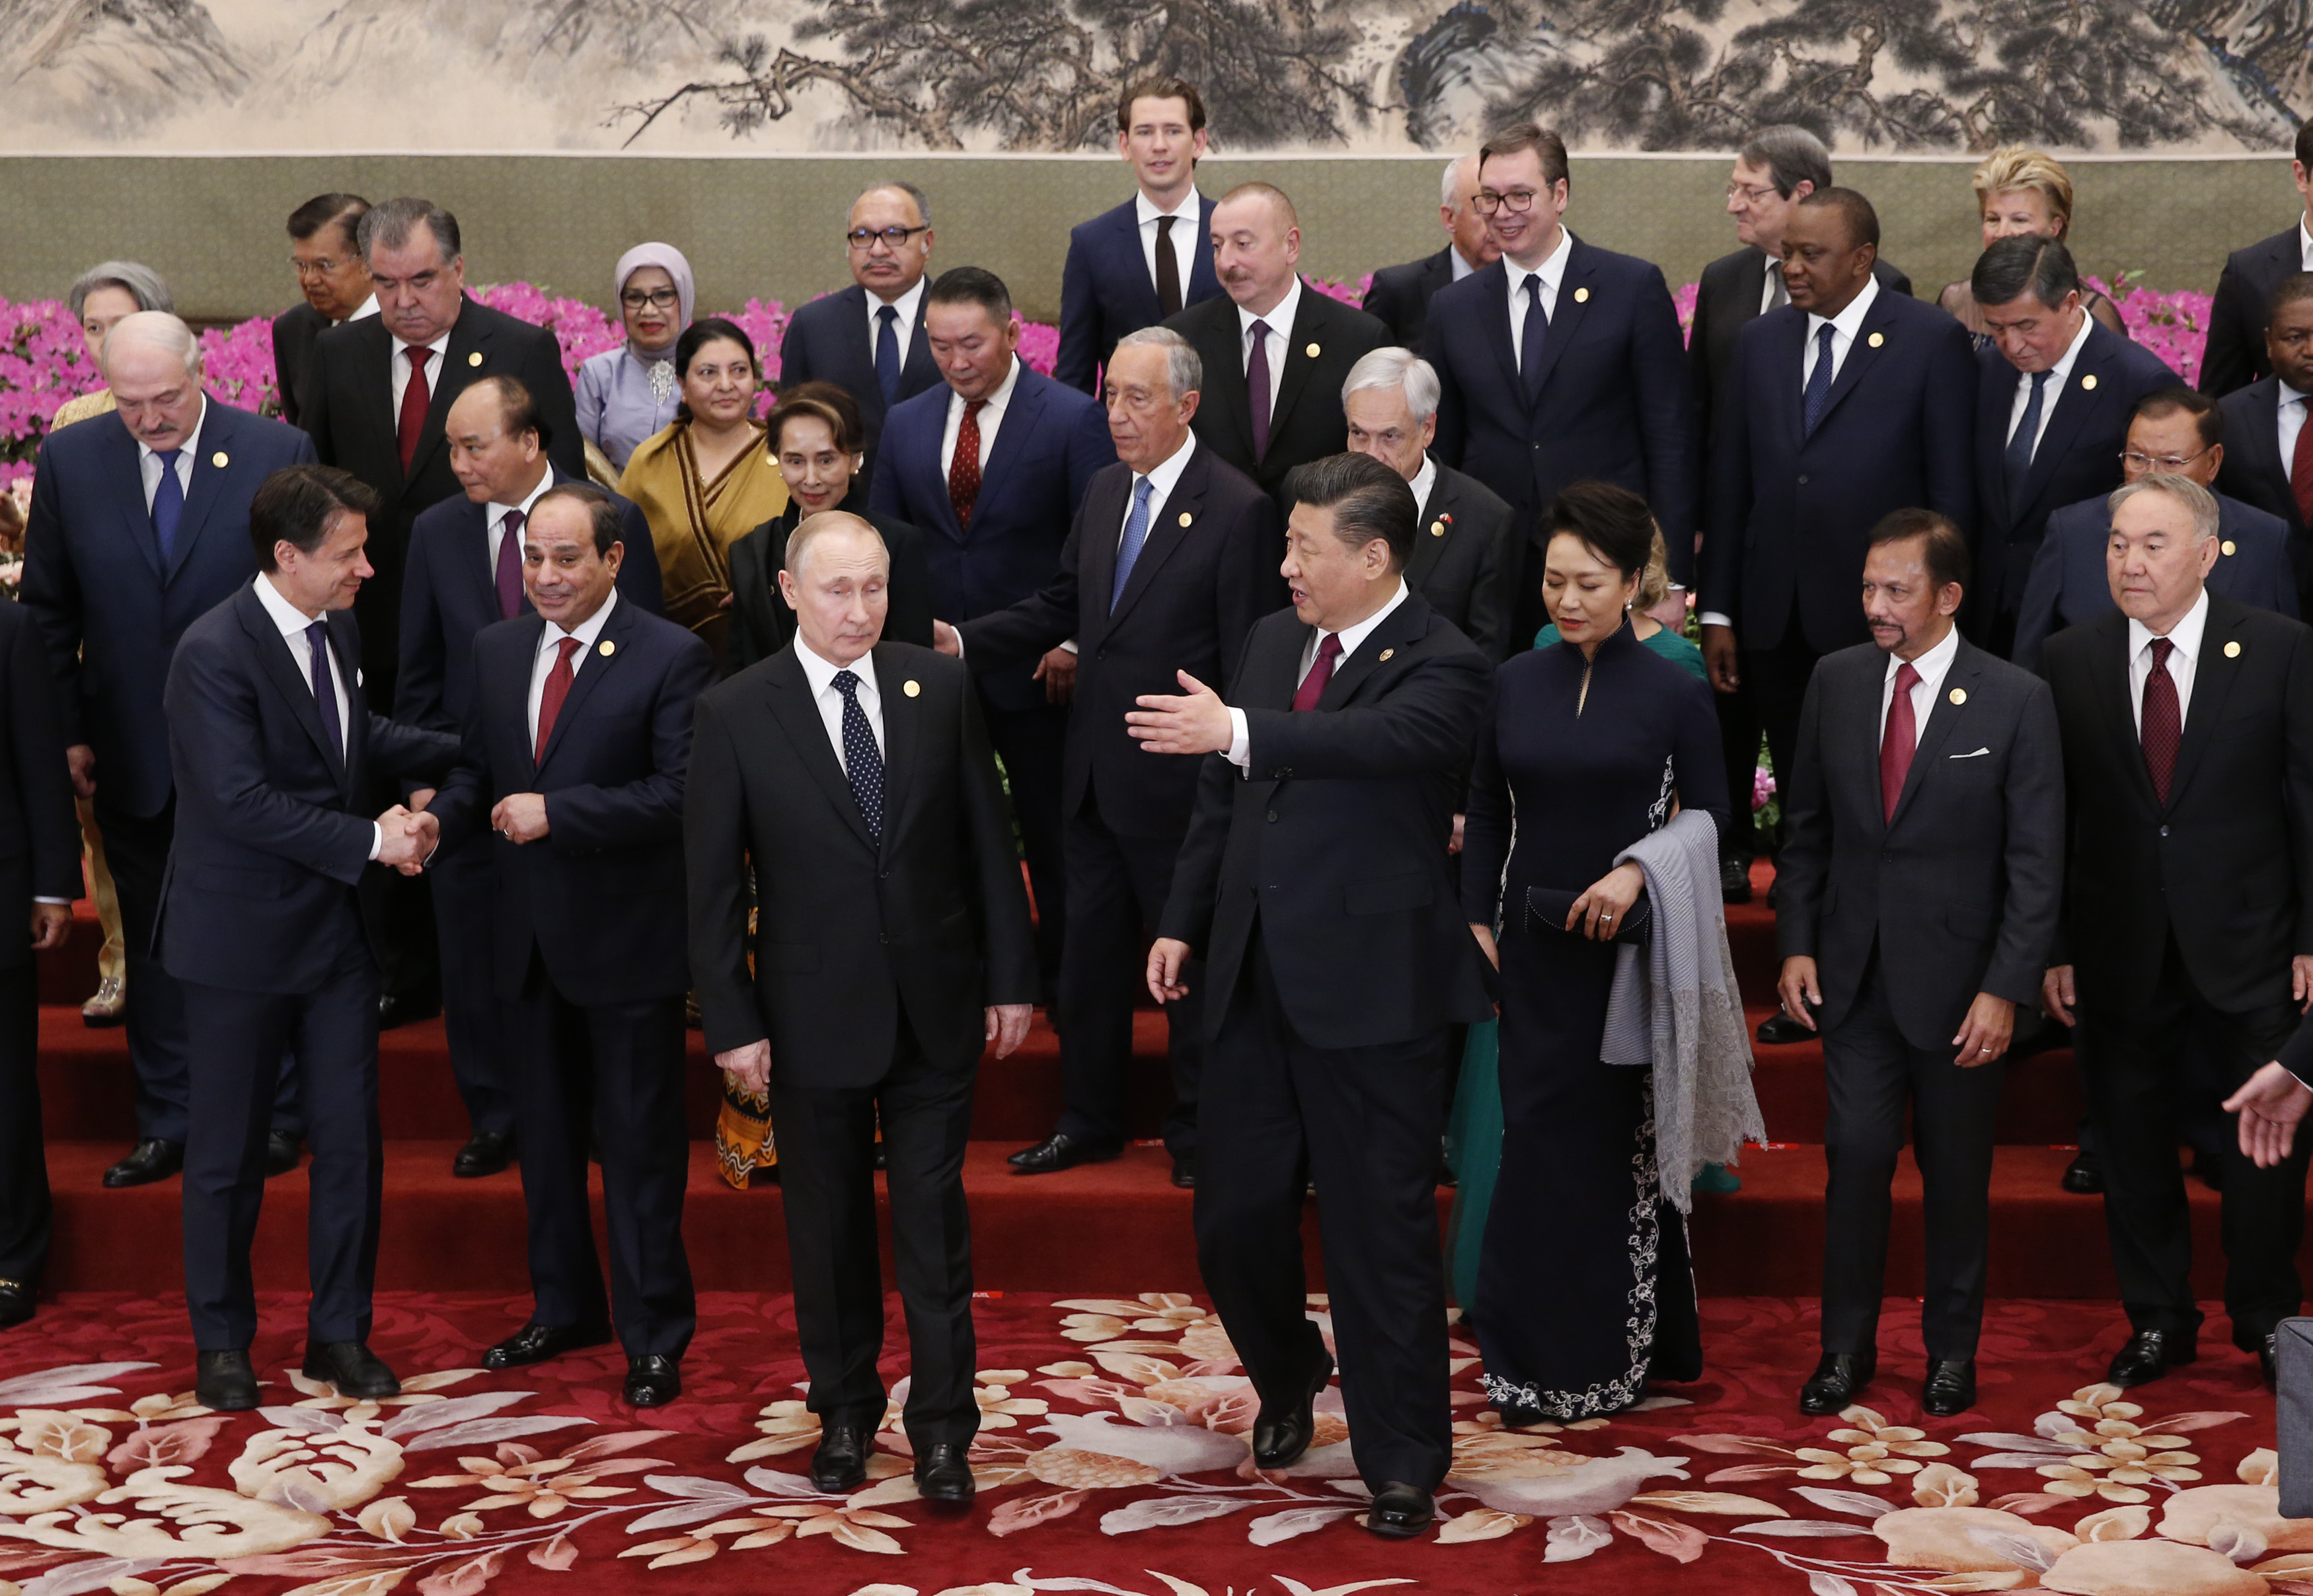 China's President Xi Jinping (C) gestures to Russia's President Vladimir Putin (centre L) after a group photo session at a welcoming banquet for the Belt and Road Forum at the Great Hall of the People in Beijing on April 26, 2019. (Photo by JASON LEE / POOL / AFP)